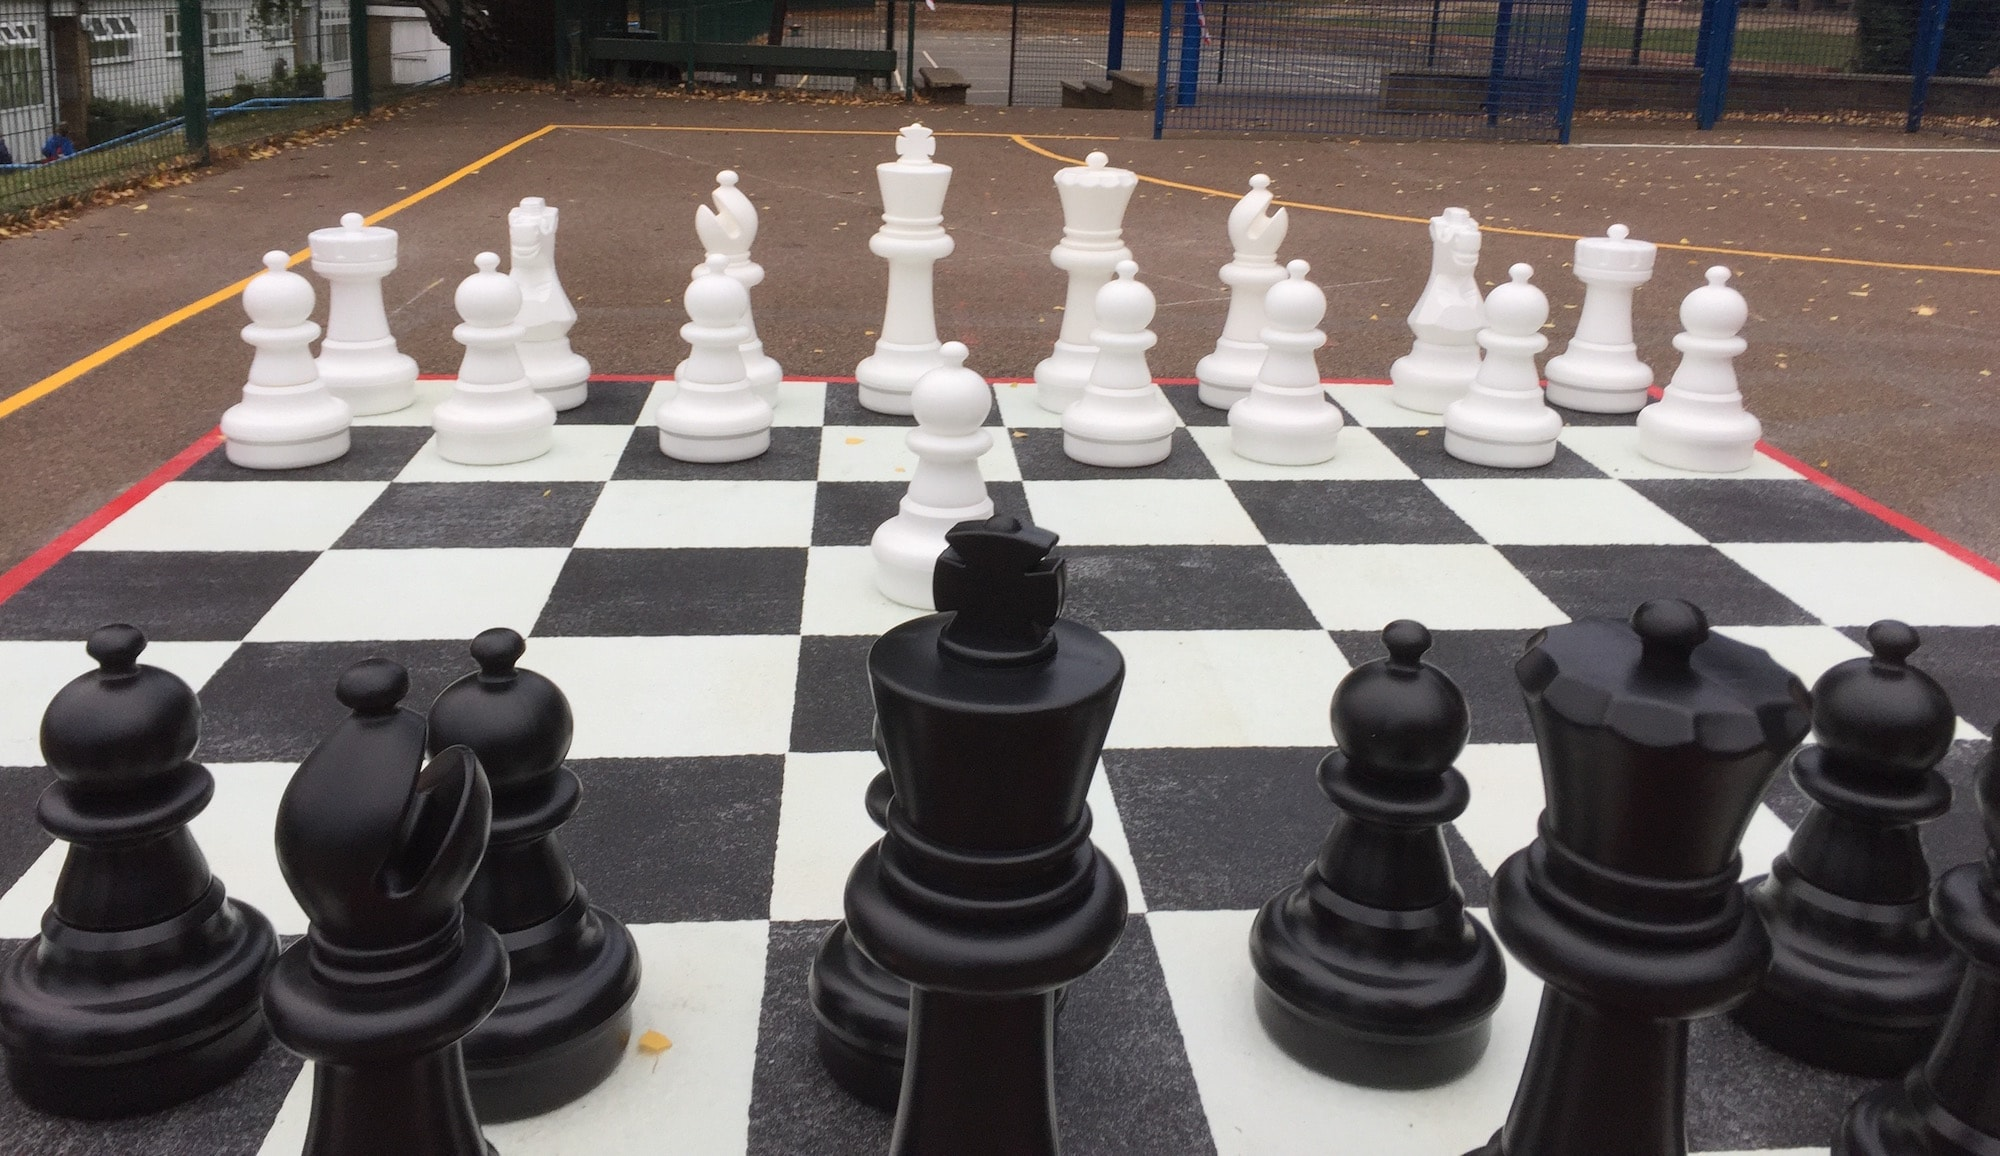 Giant Chess Set And Playground Chessboard Marking In London